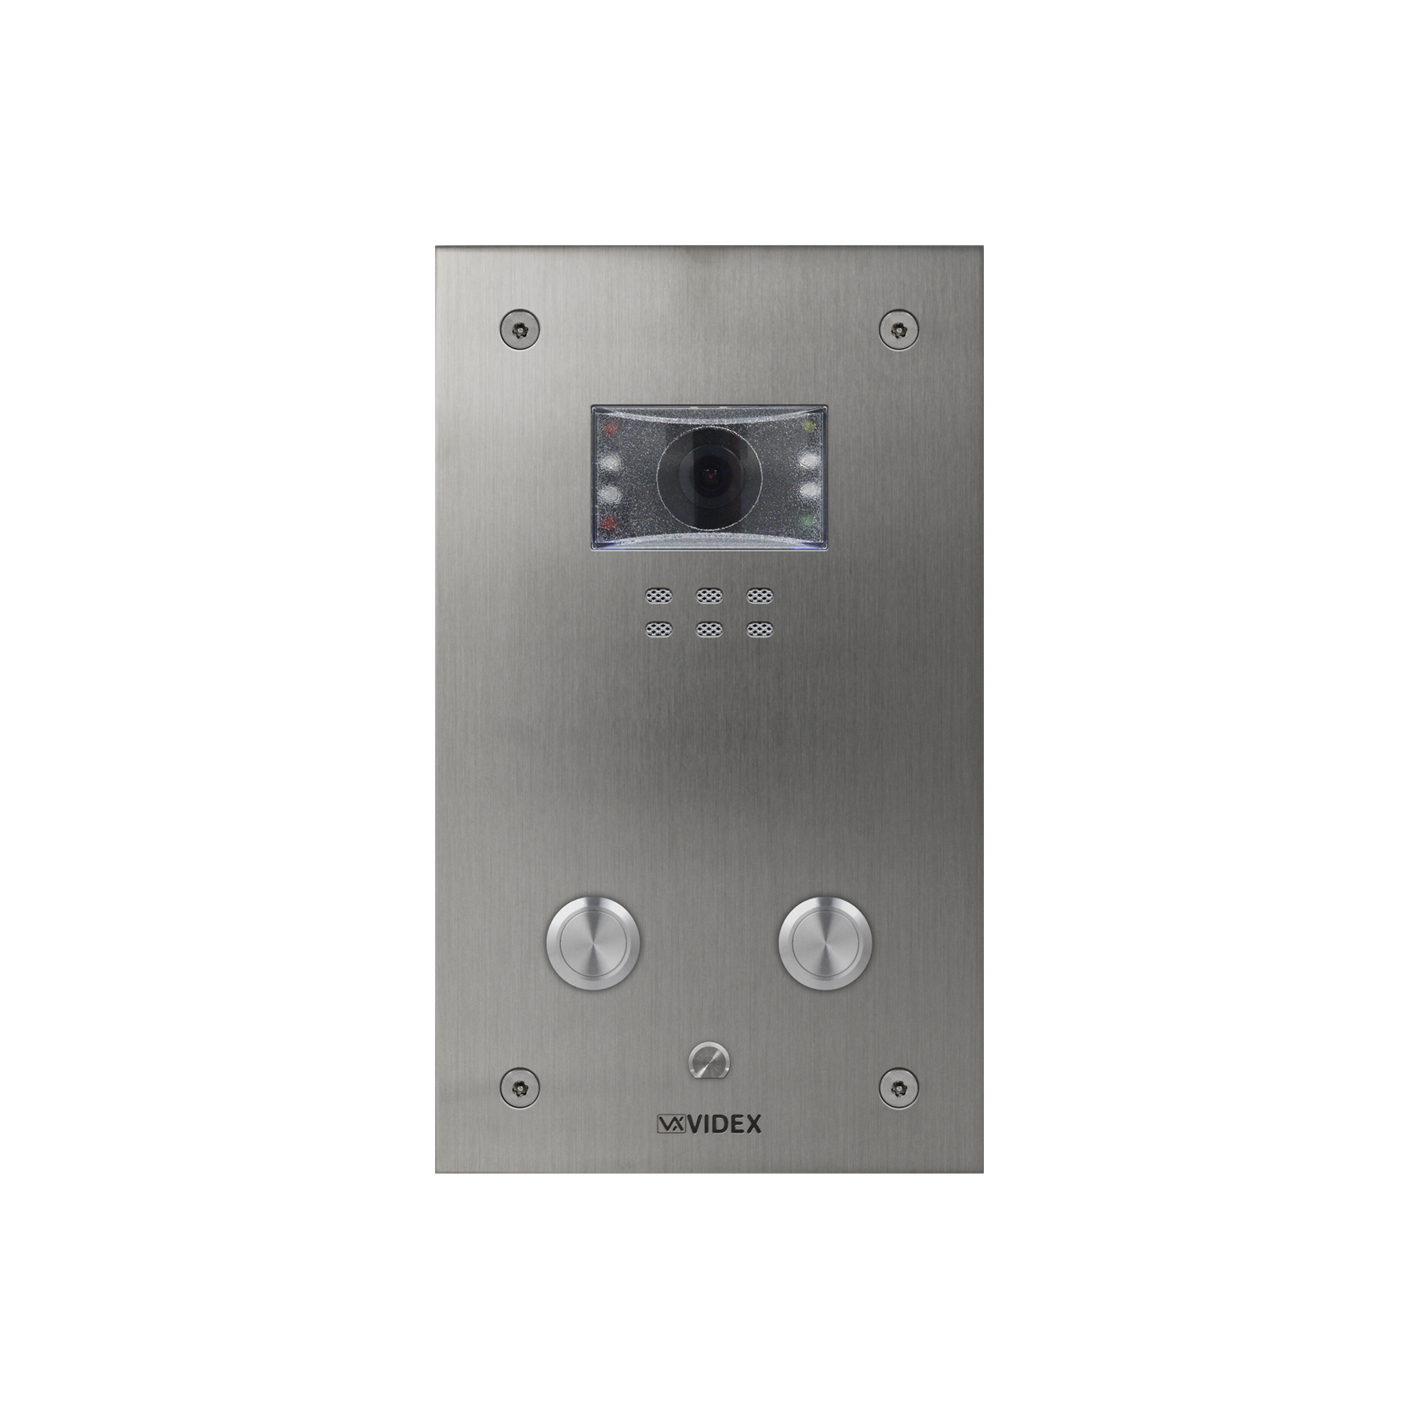 2 button Vandal Resistant IP Colour Video Panel (flush)